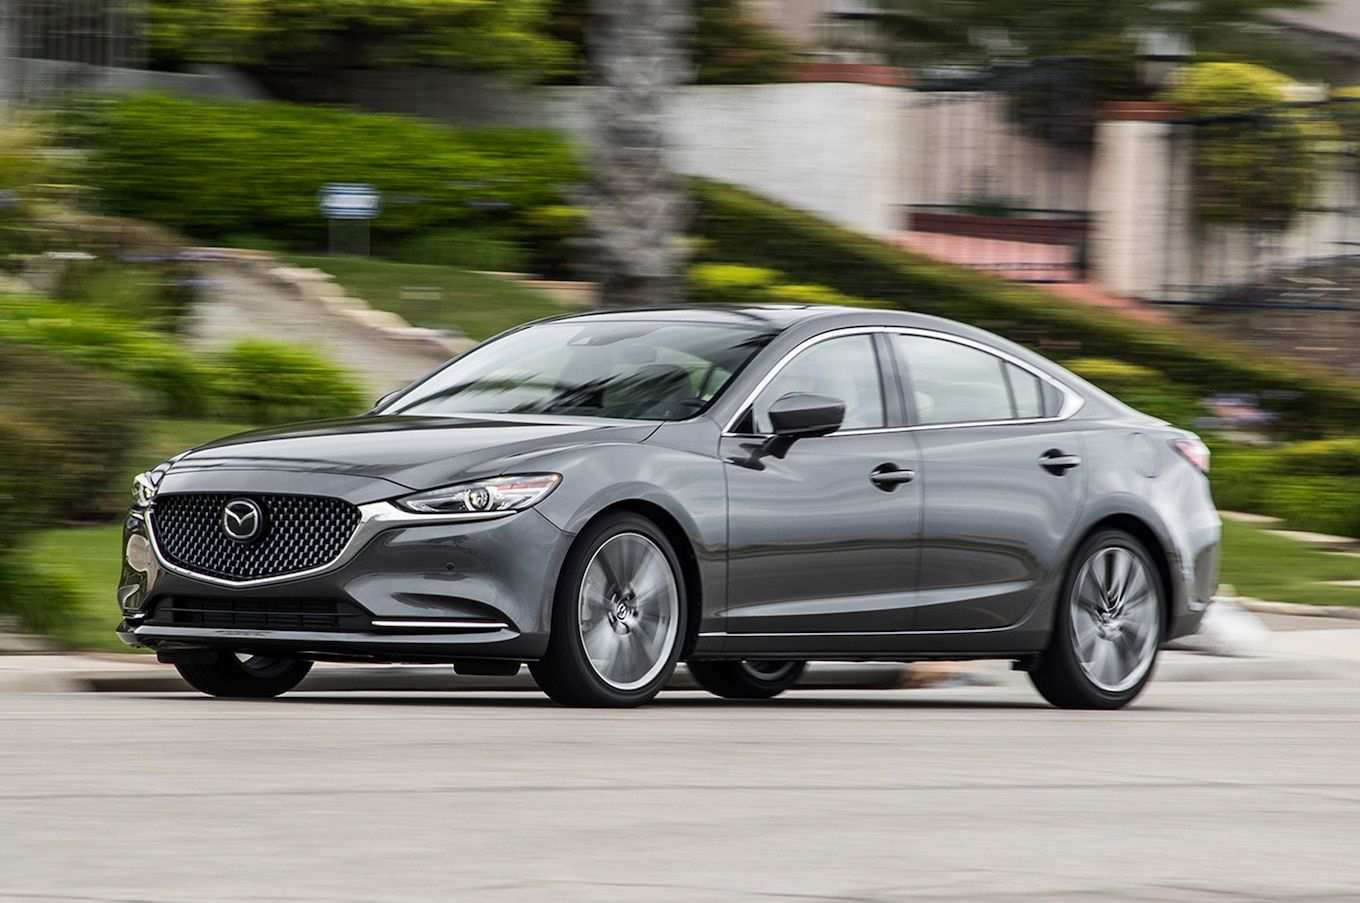 78 The 2019 Mazda 6 Turbo 0 60 Spesification